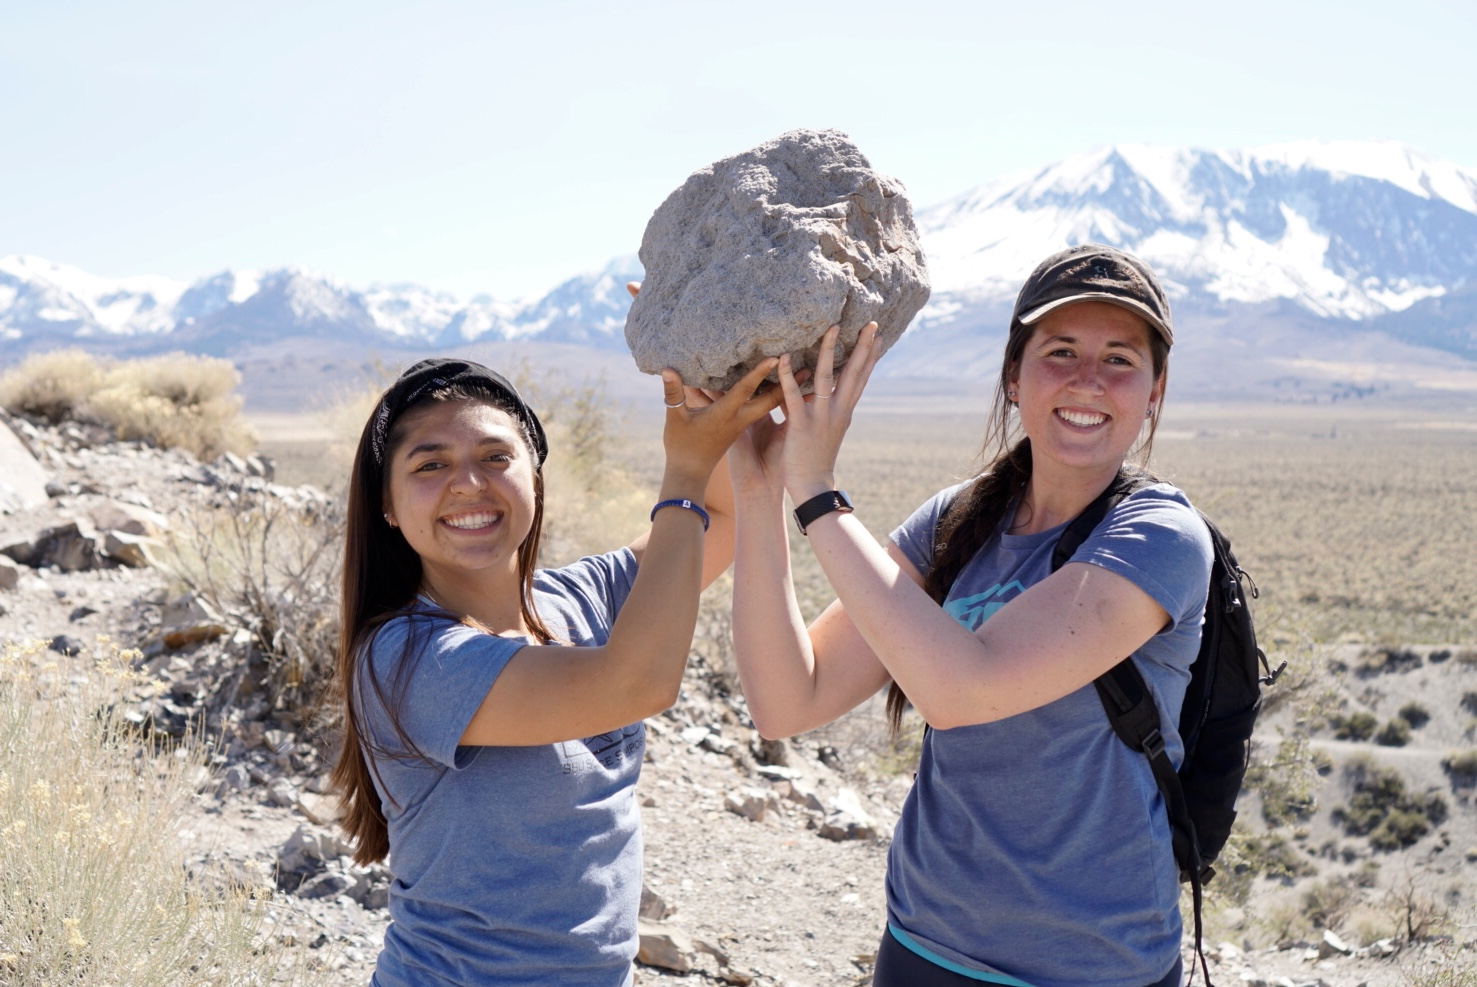 Two students hold a large rock above their heads in a dessert with snow capped mountains in the background